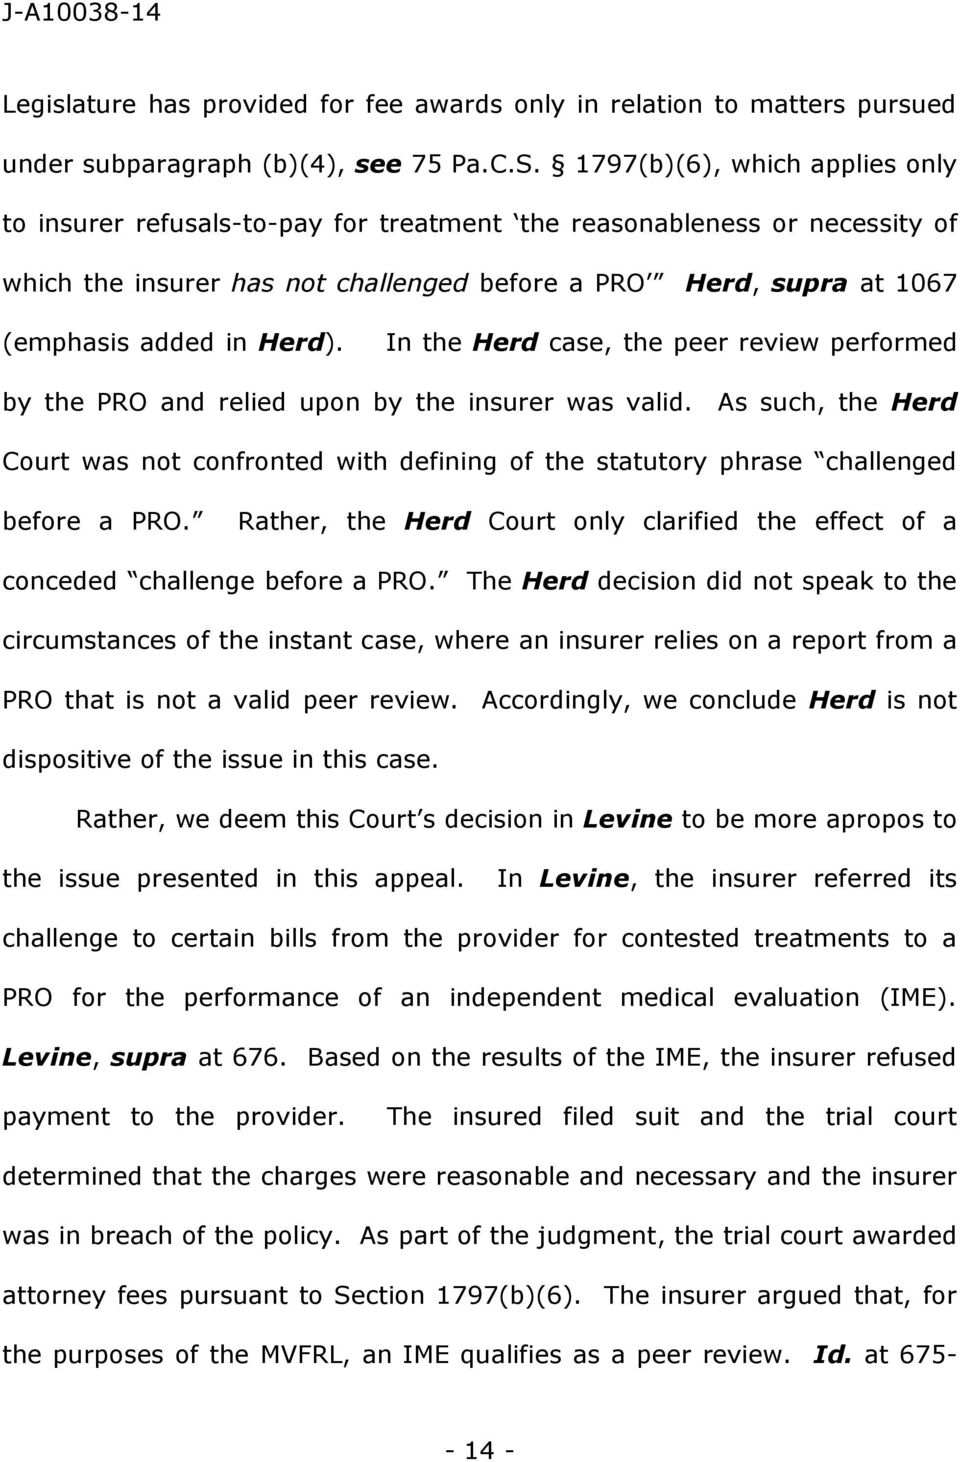 Herd). In the Herd case, the peer review performed by the PRO and relied upon by the insurer was valid.